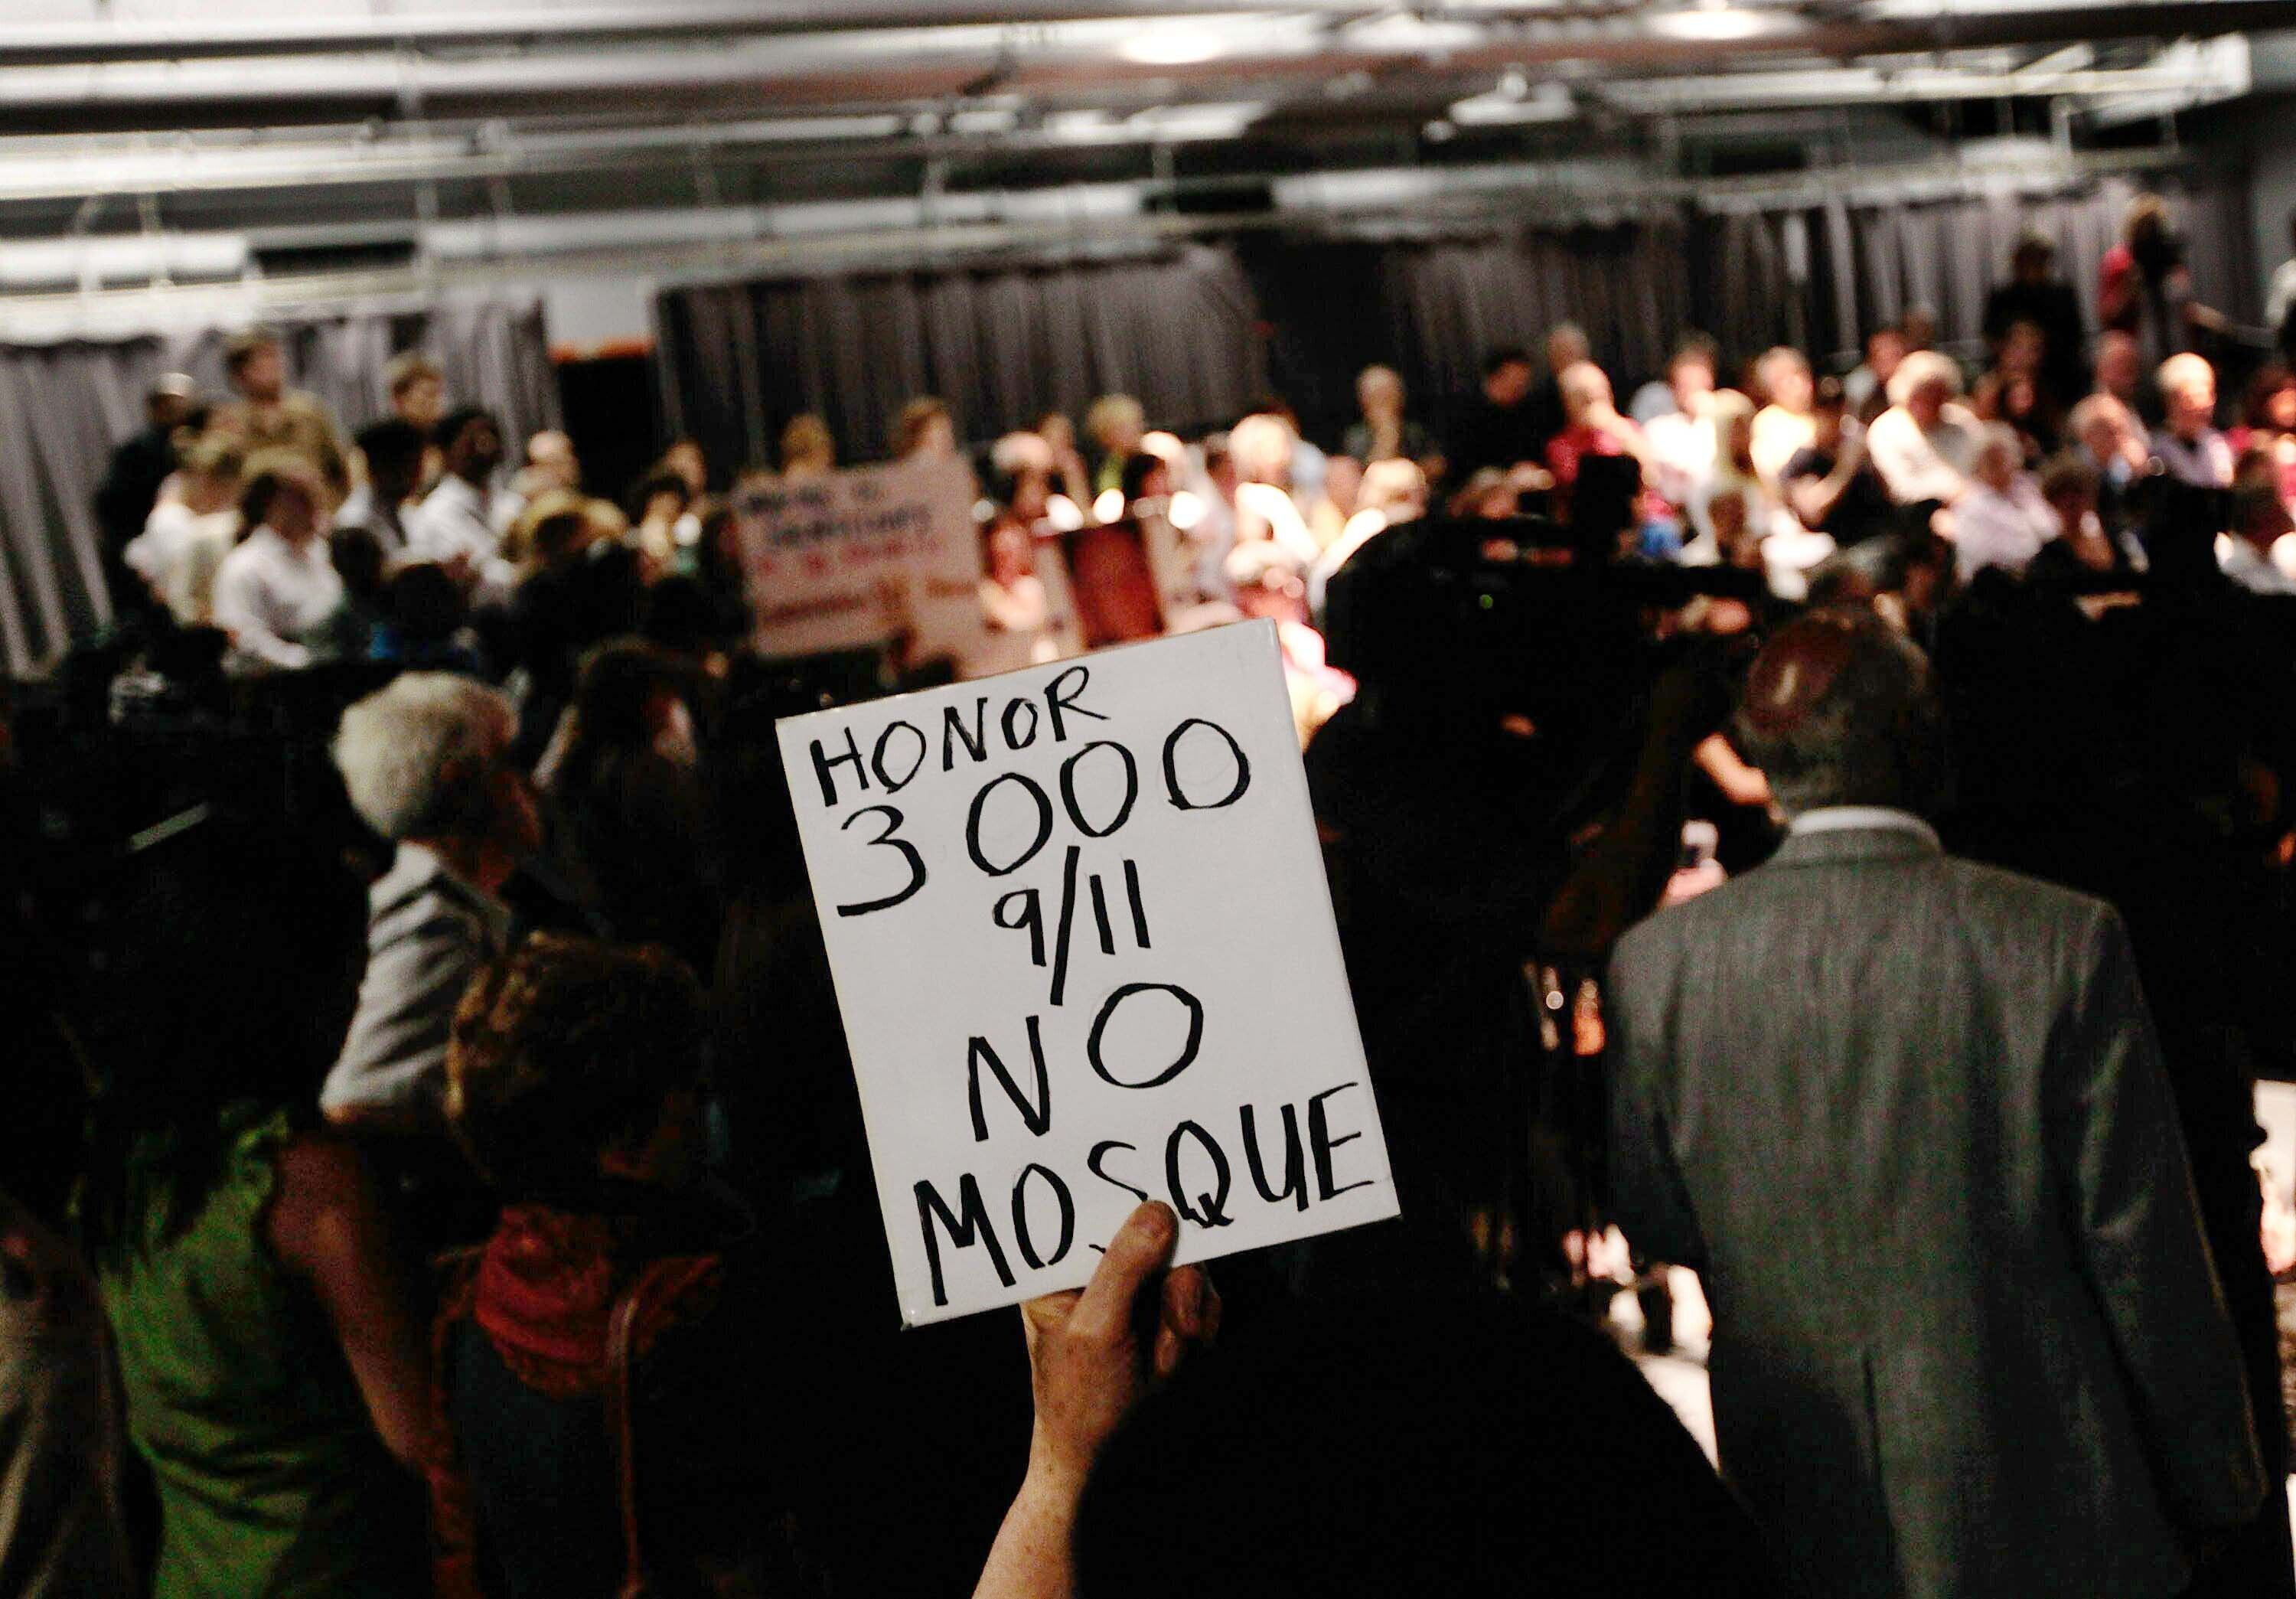 The heated scene at a community board meeting to debate the Cordoba House in Lower Manhattan on May 25, 2010.